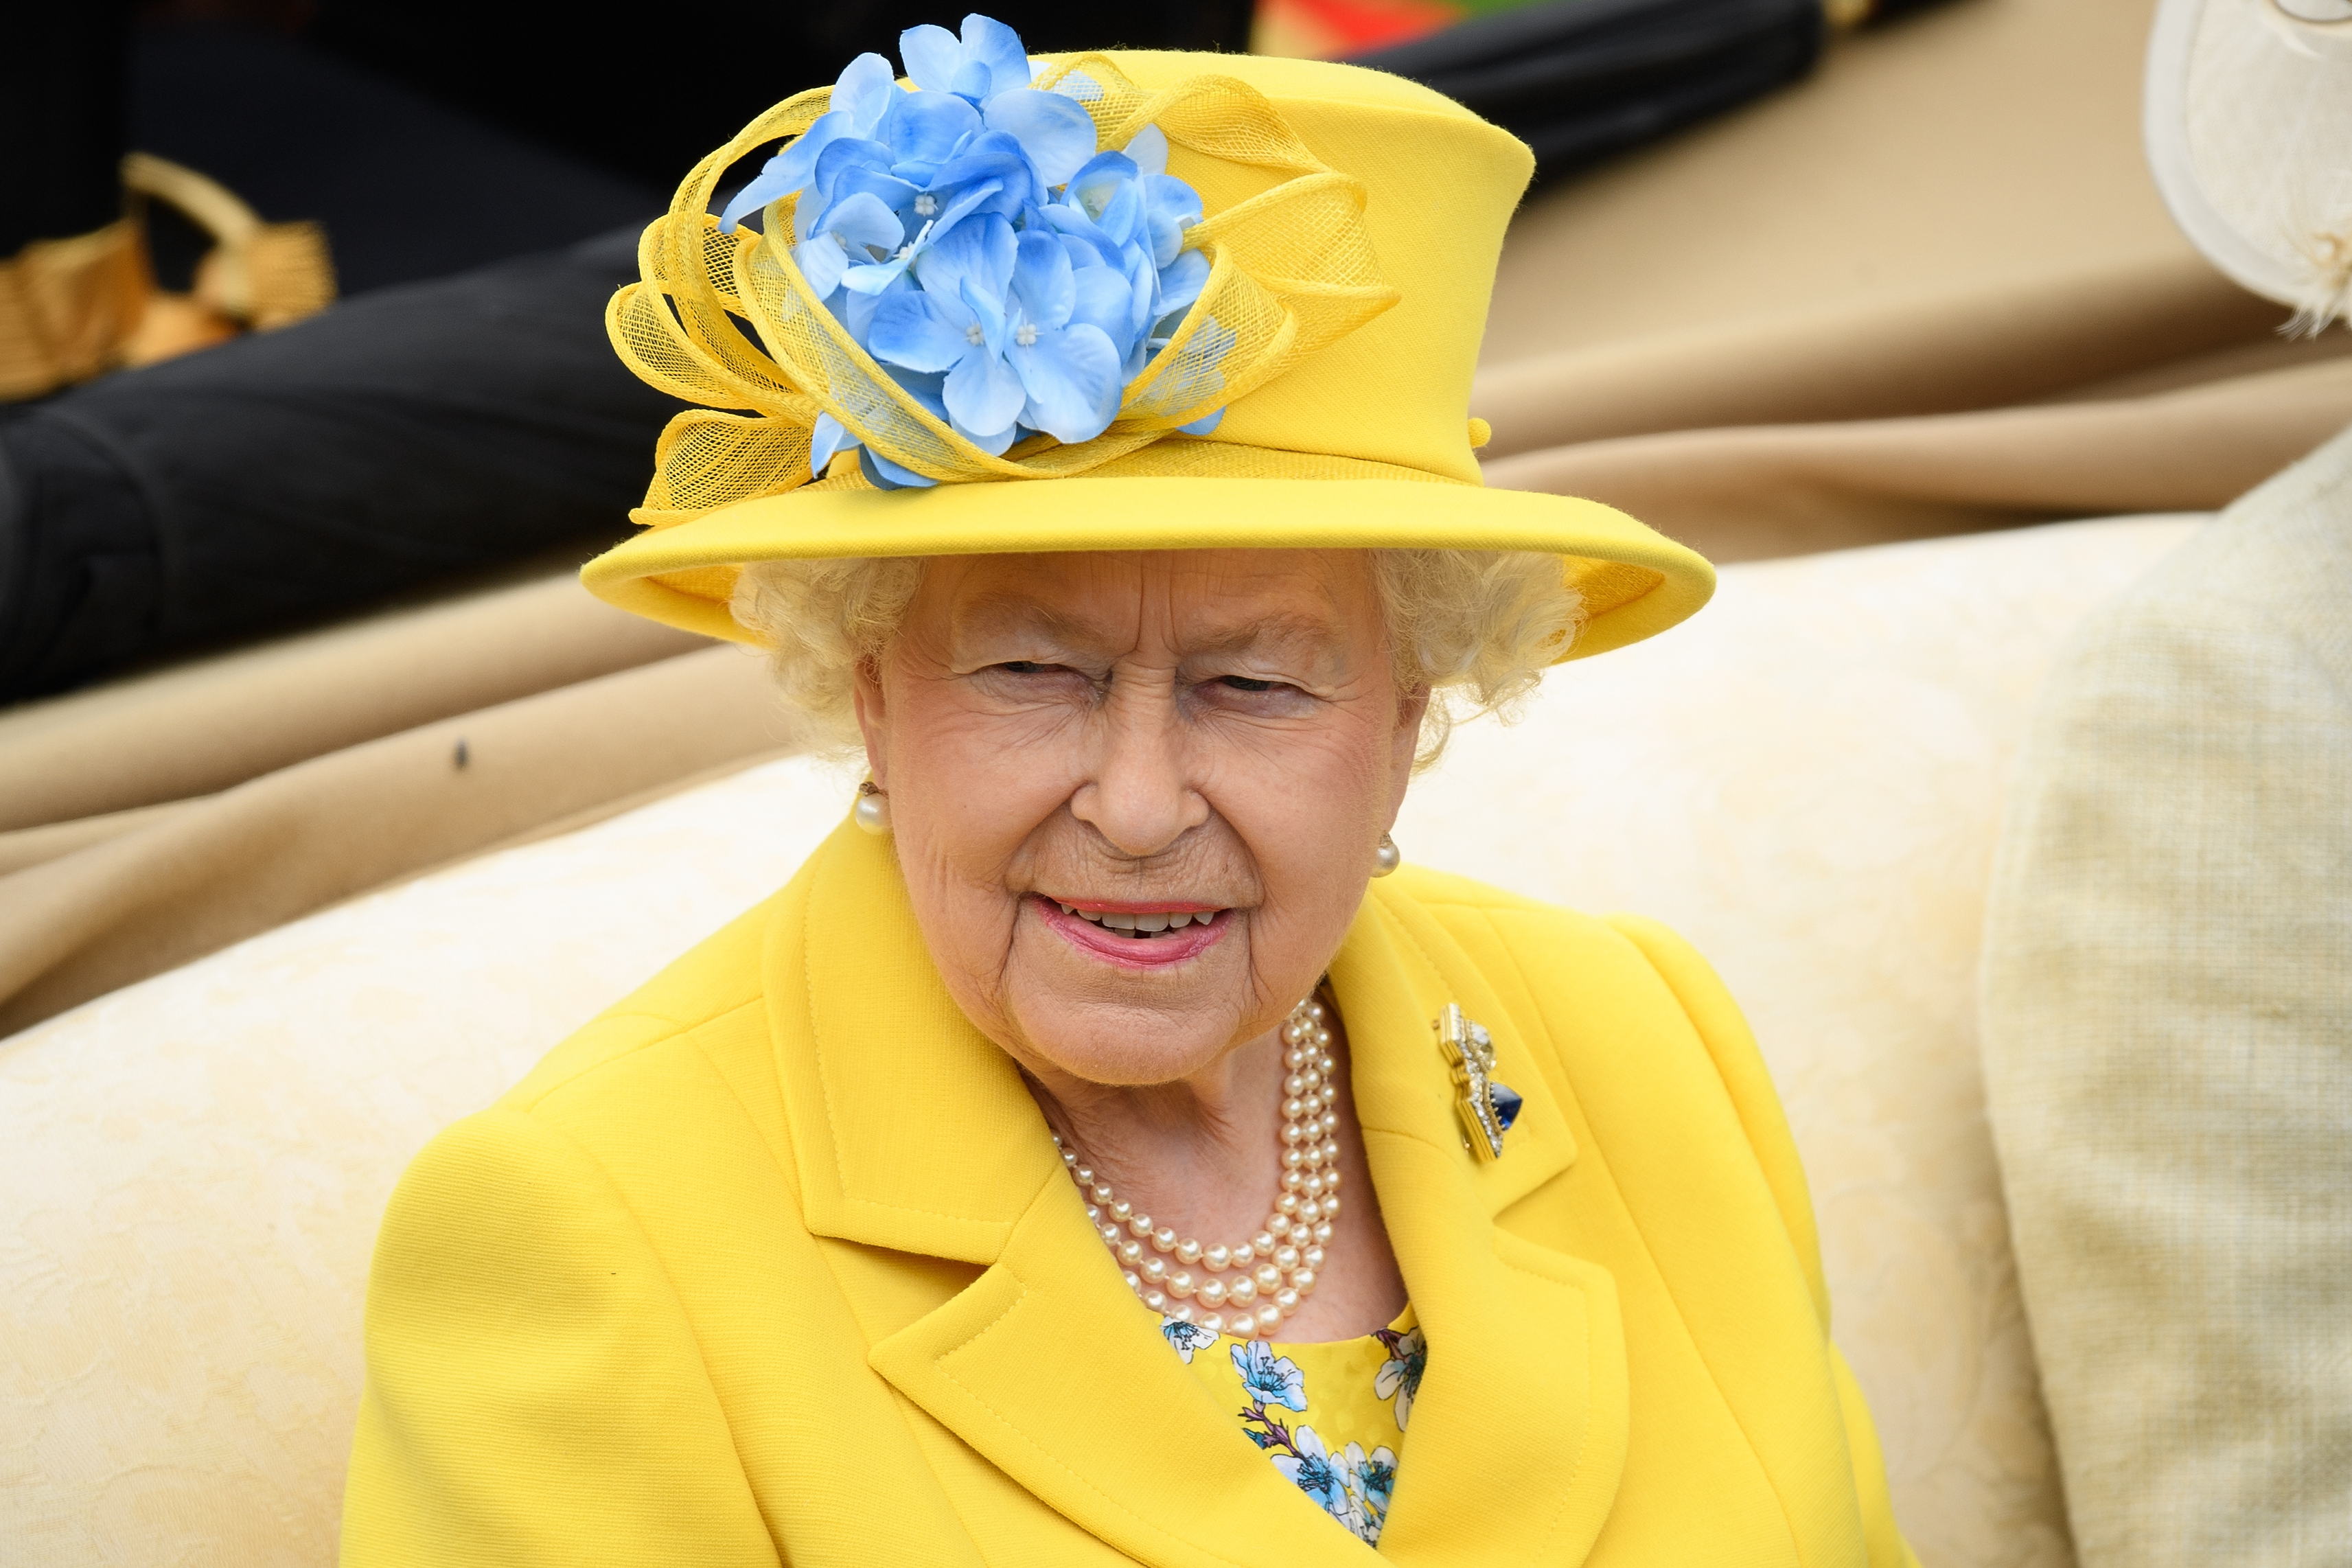 Britain's Queen Elizabeth II attends day one of Royal Ascot at Ascot Racecourse in Ascot, United Kingdom on June 19, 2018.